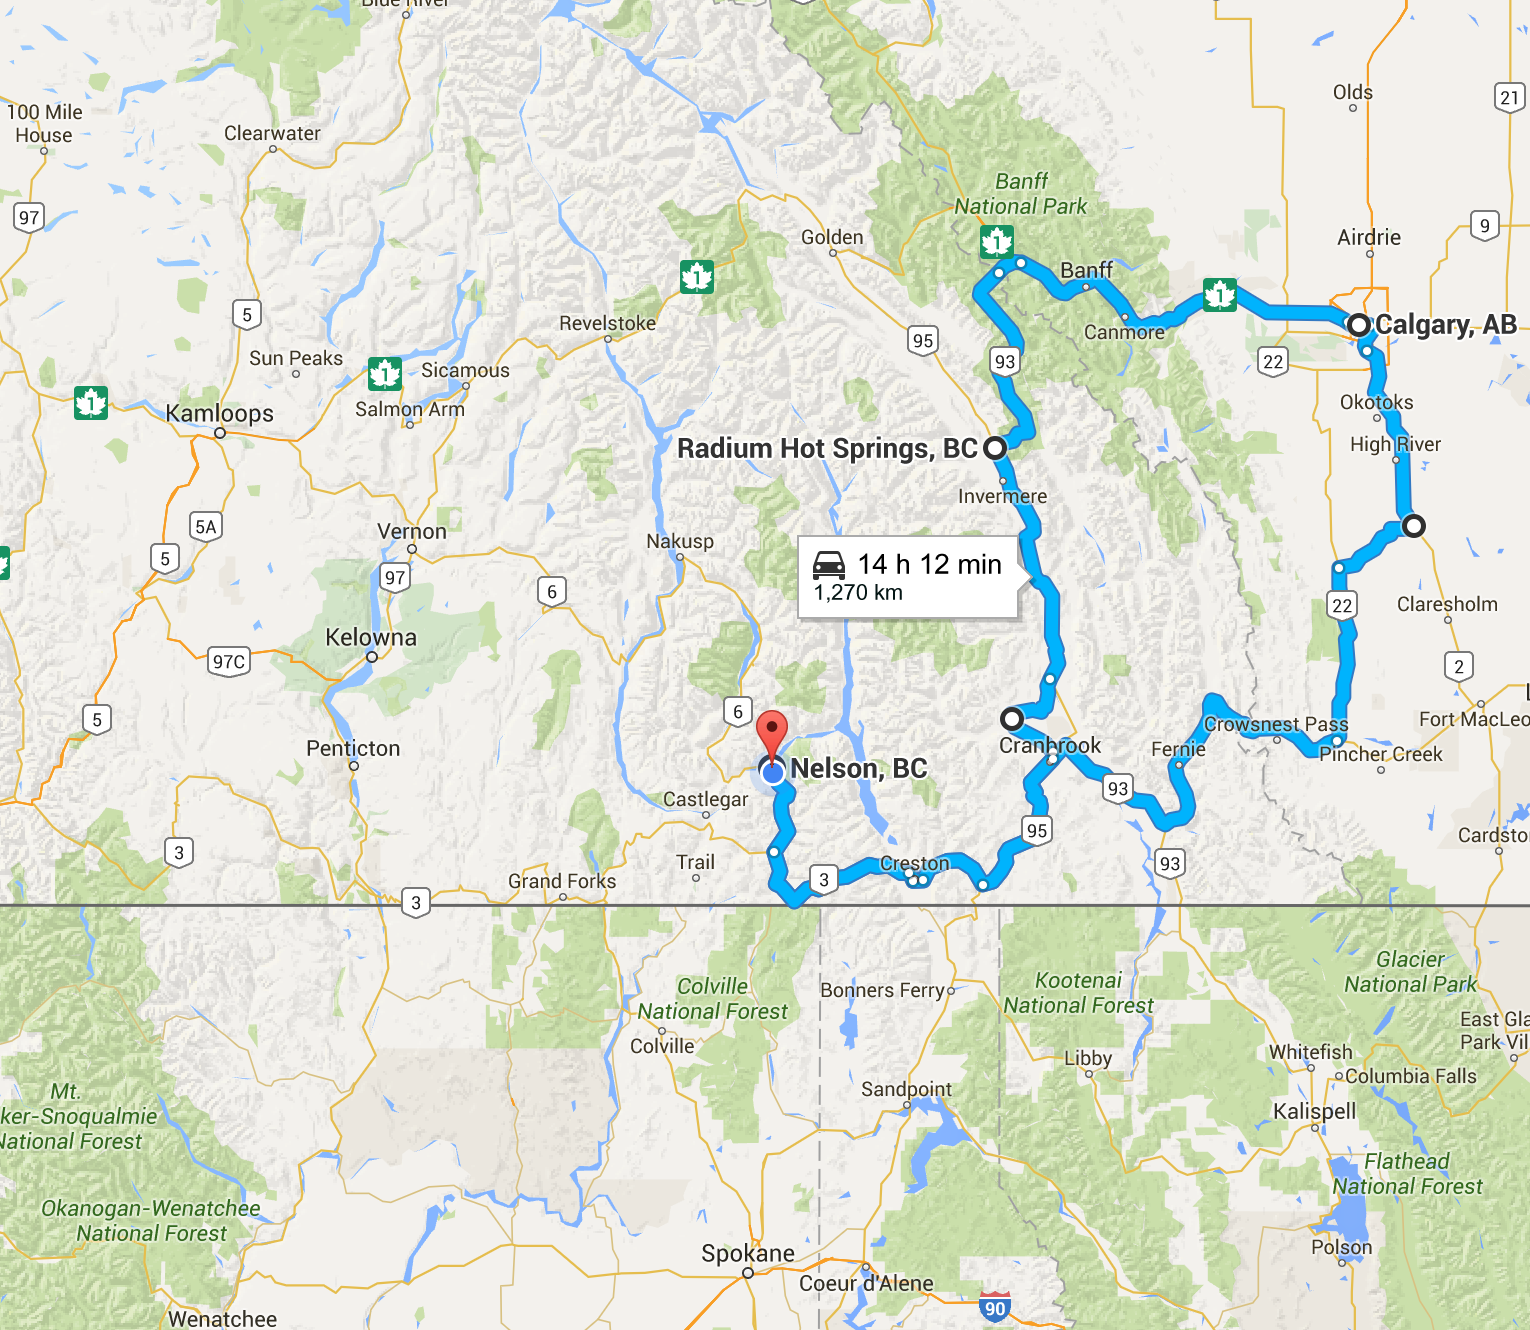 An illustrated map with a blue line indicating the route from Nelson to Calgary and back.